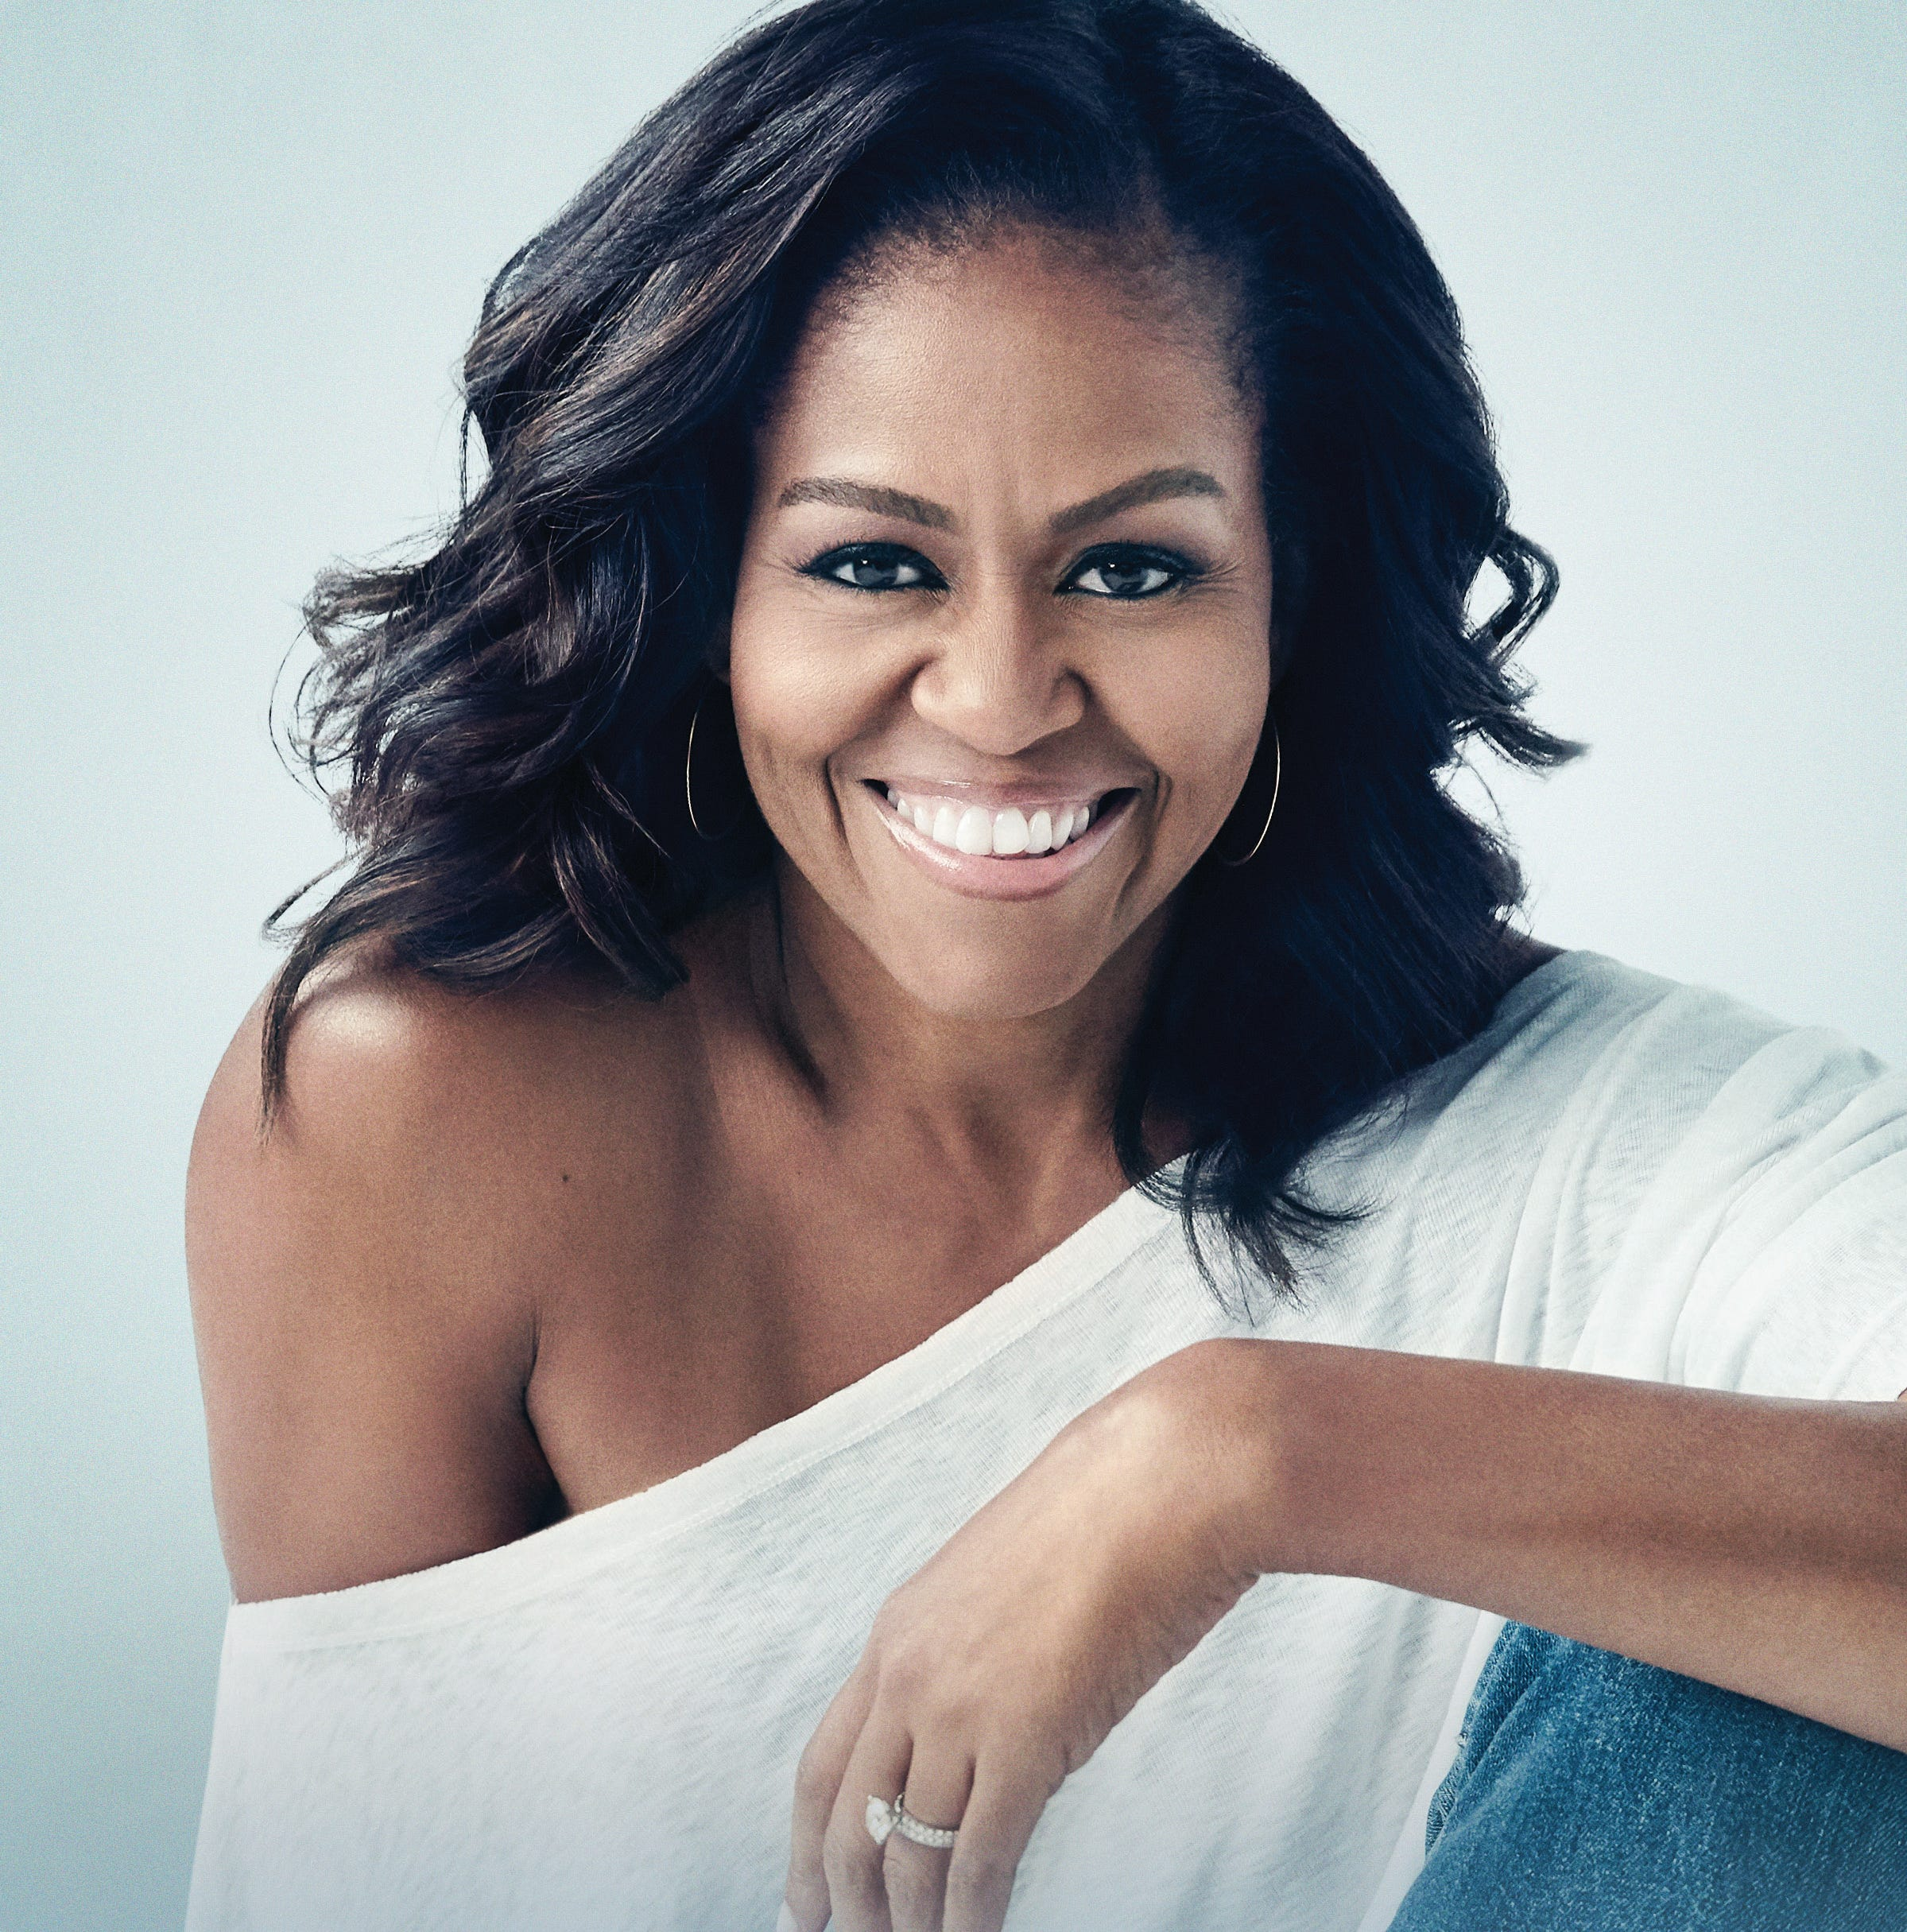 Michelle Obama to visit Milwaukee March 14 on book tour for 'Becoming'